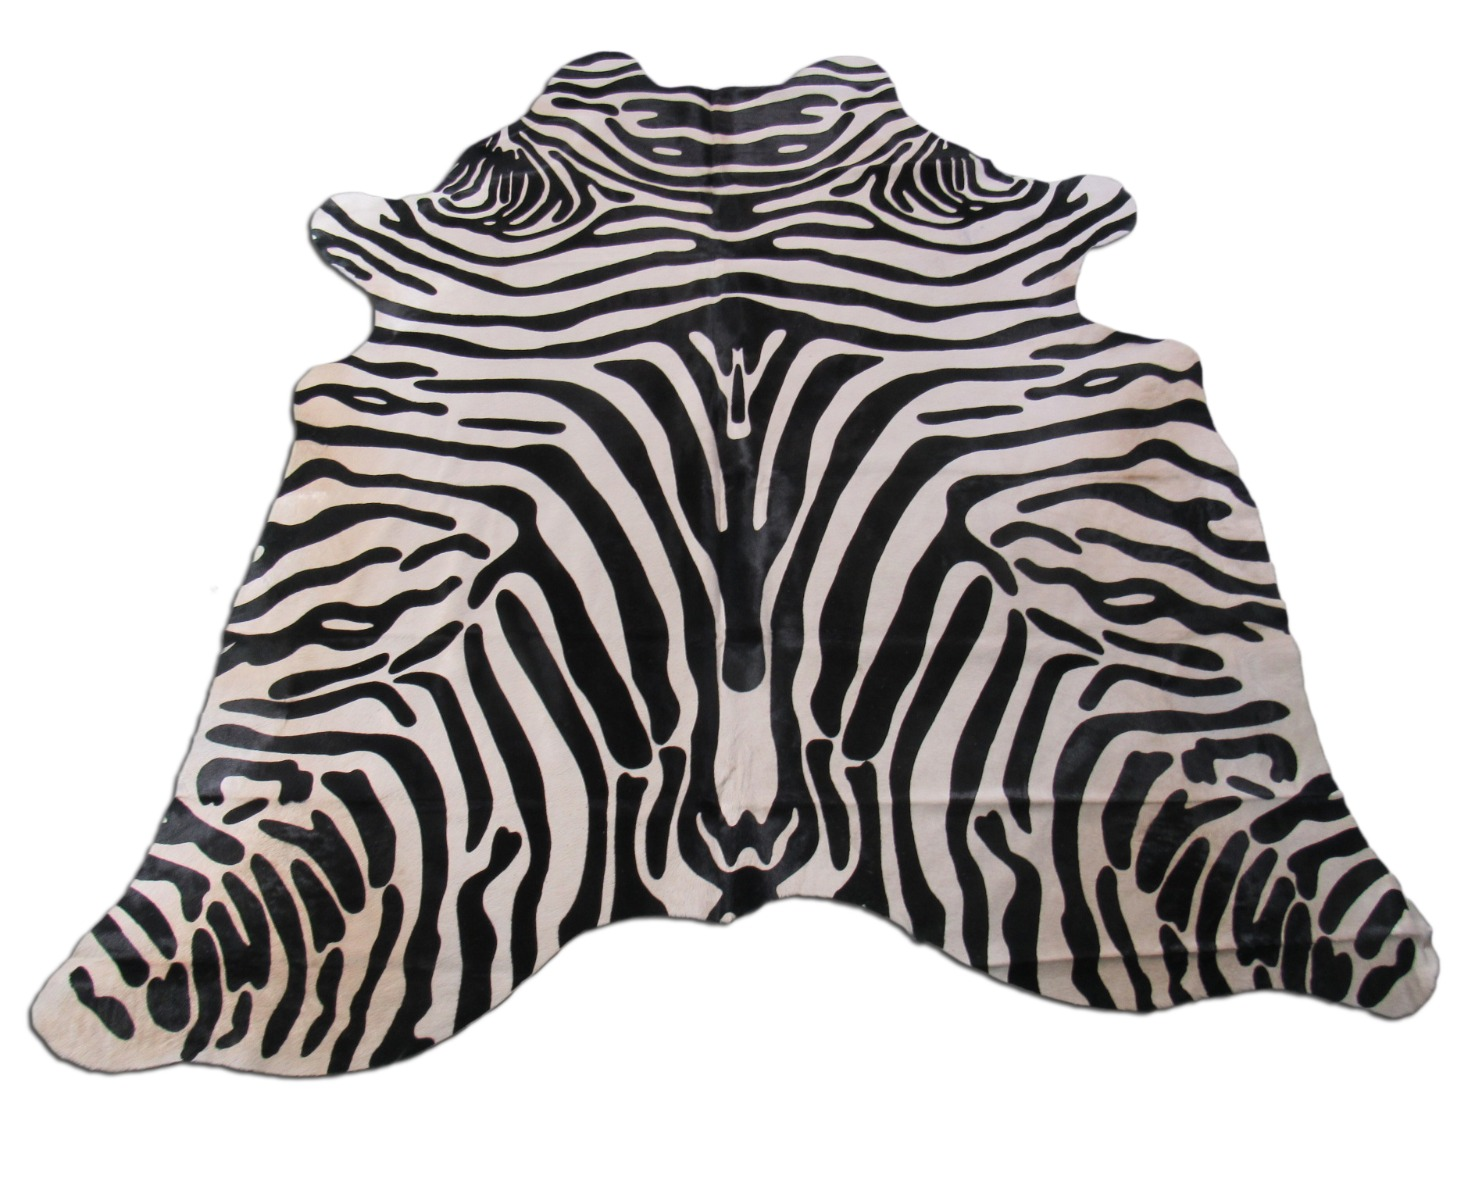 A-1409 Upholstery Zebra Print Cowhide Rug Size: 6 1/4' X 6 1/4'